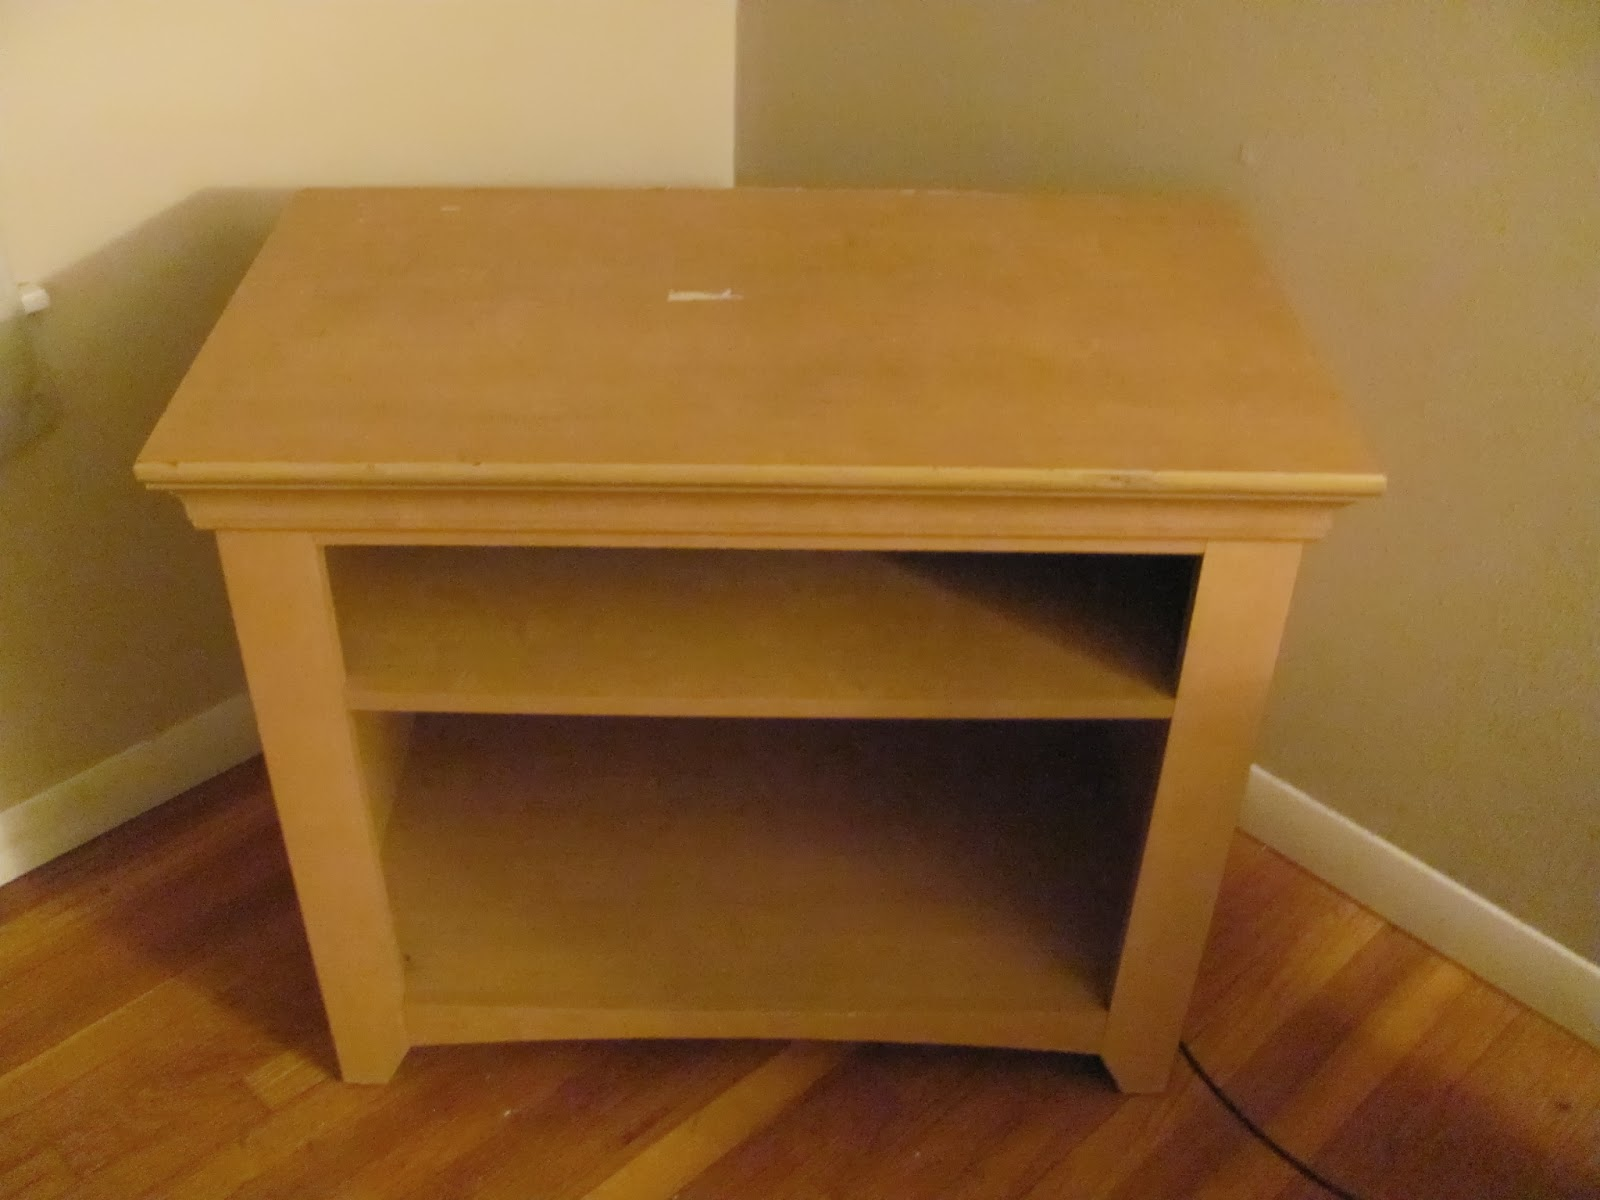 Tan TV stand on display before being sold on Craigslist